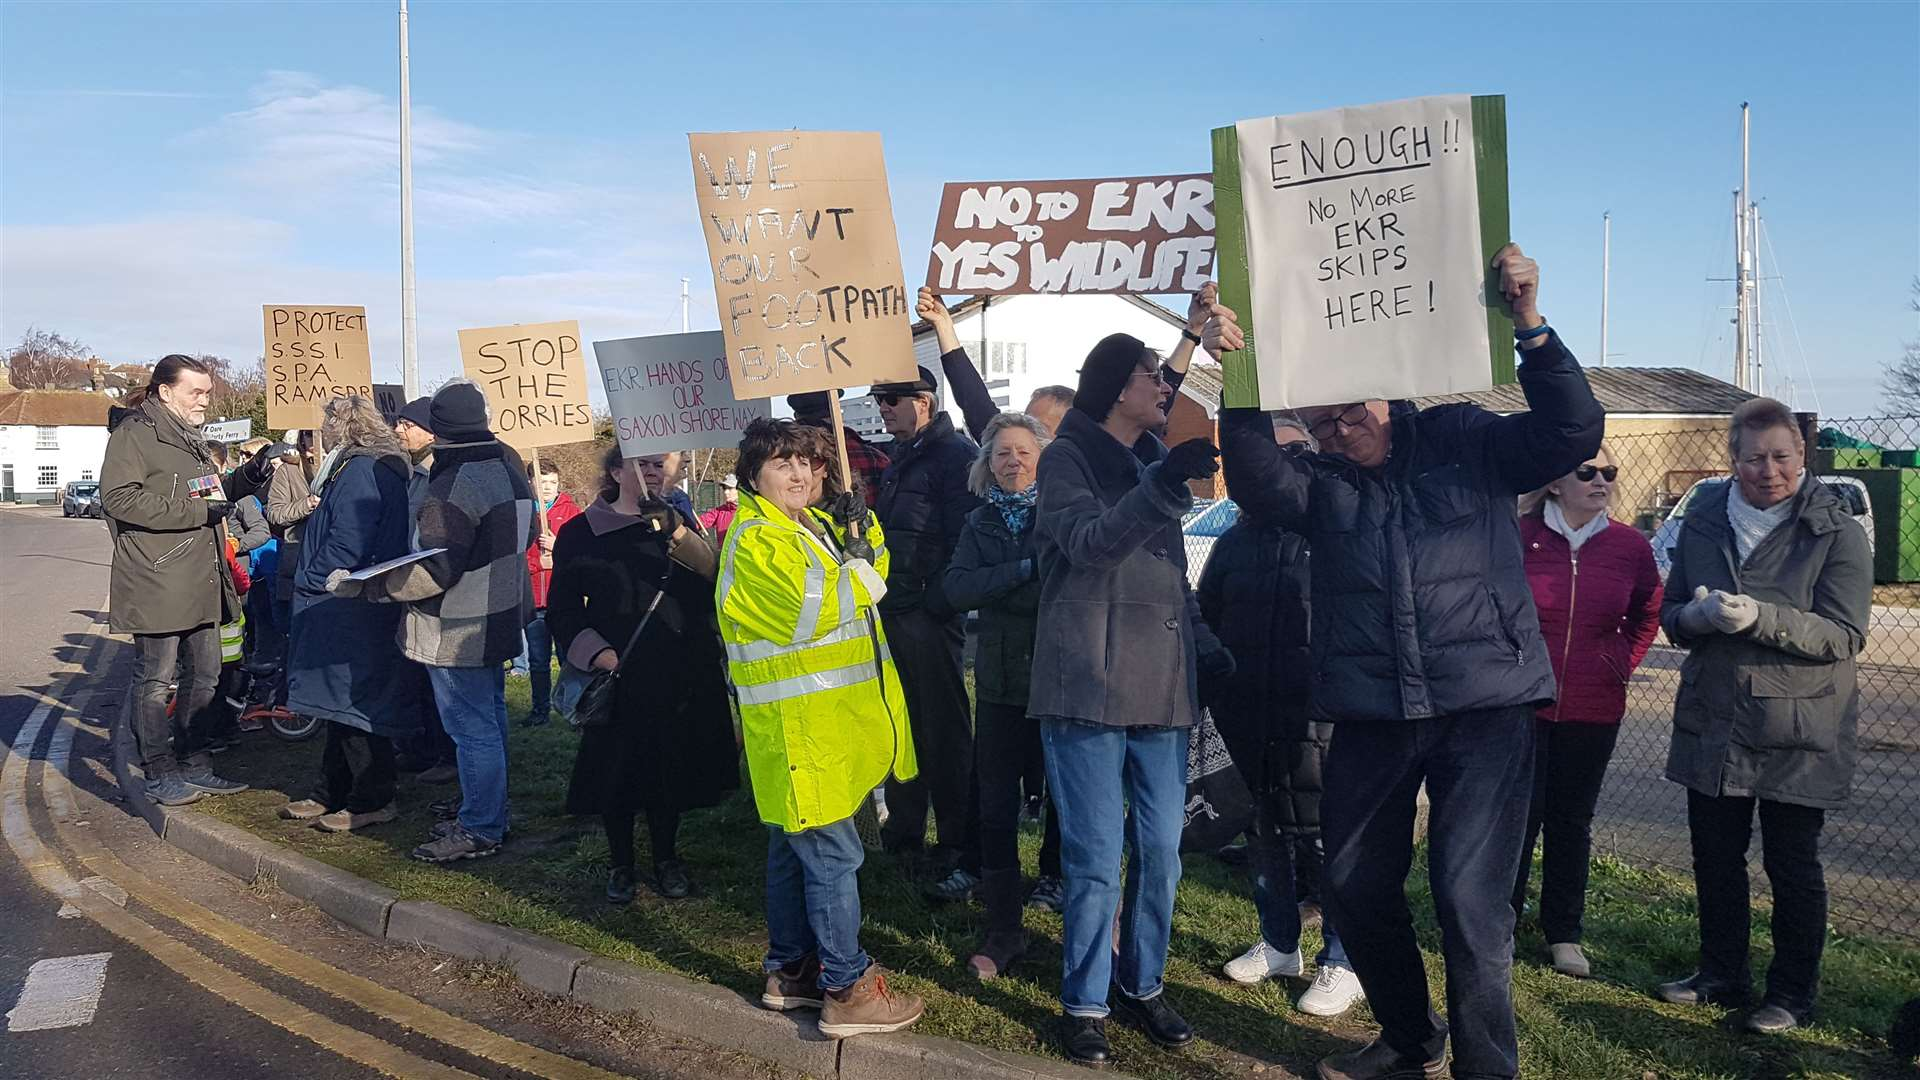 Dozens gathered to protest the planning application in February (7308393)